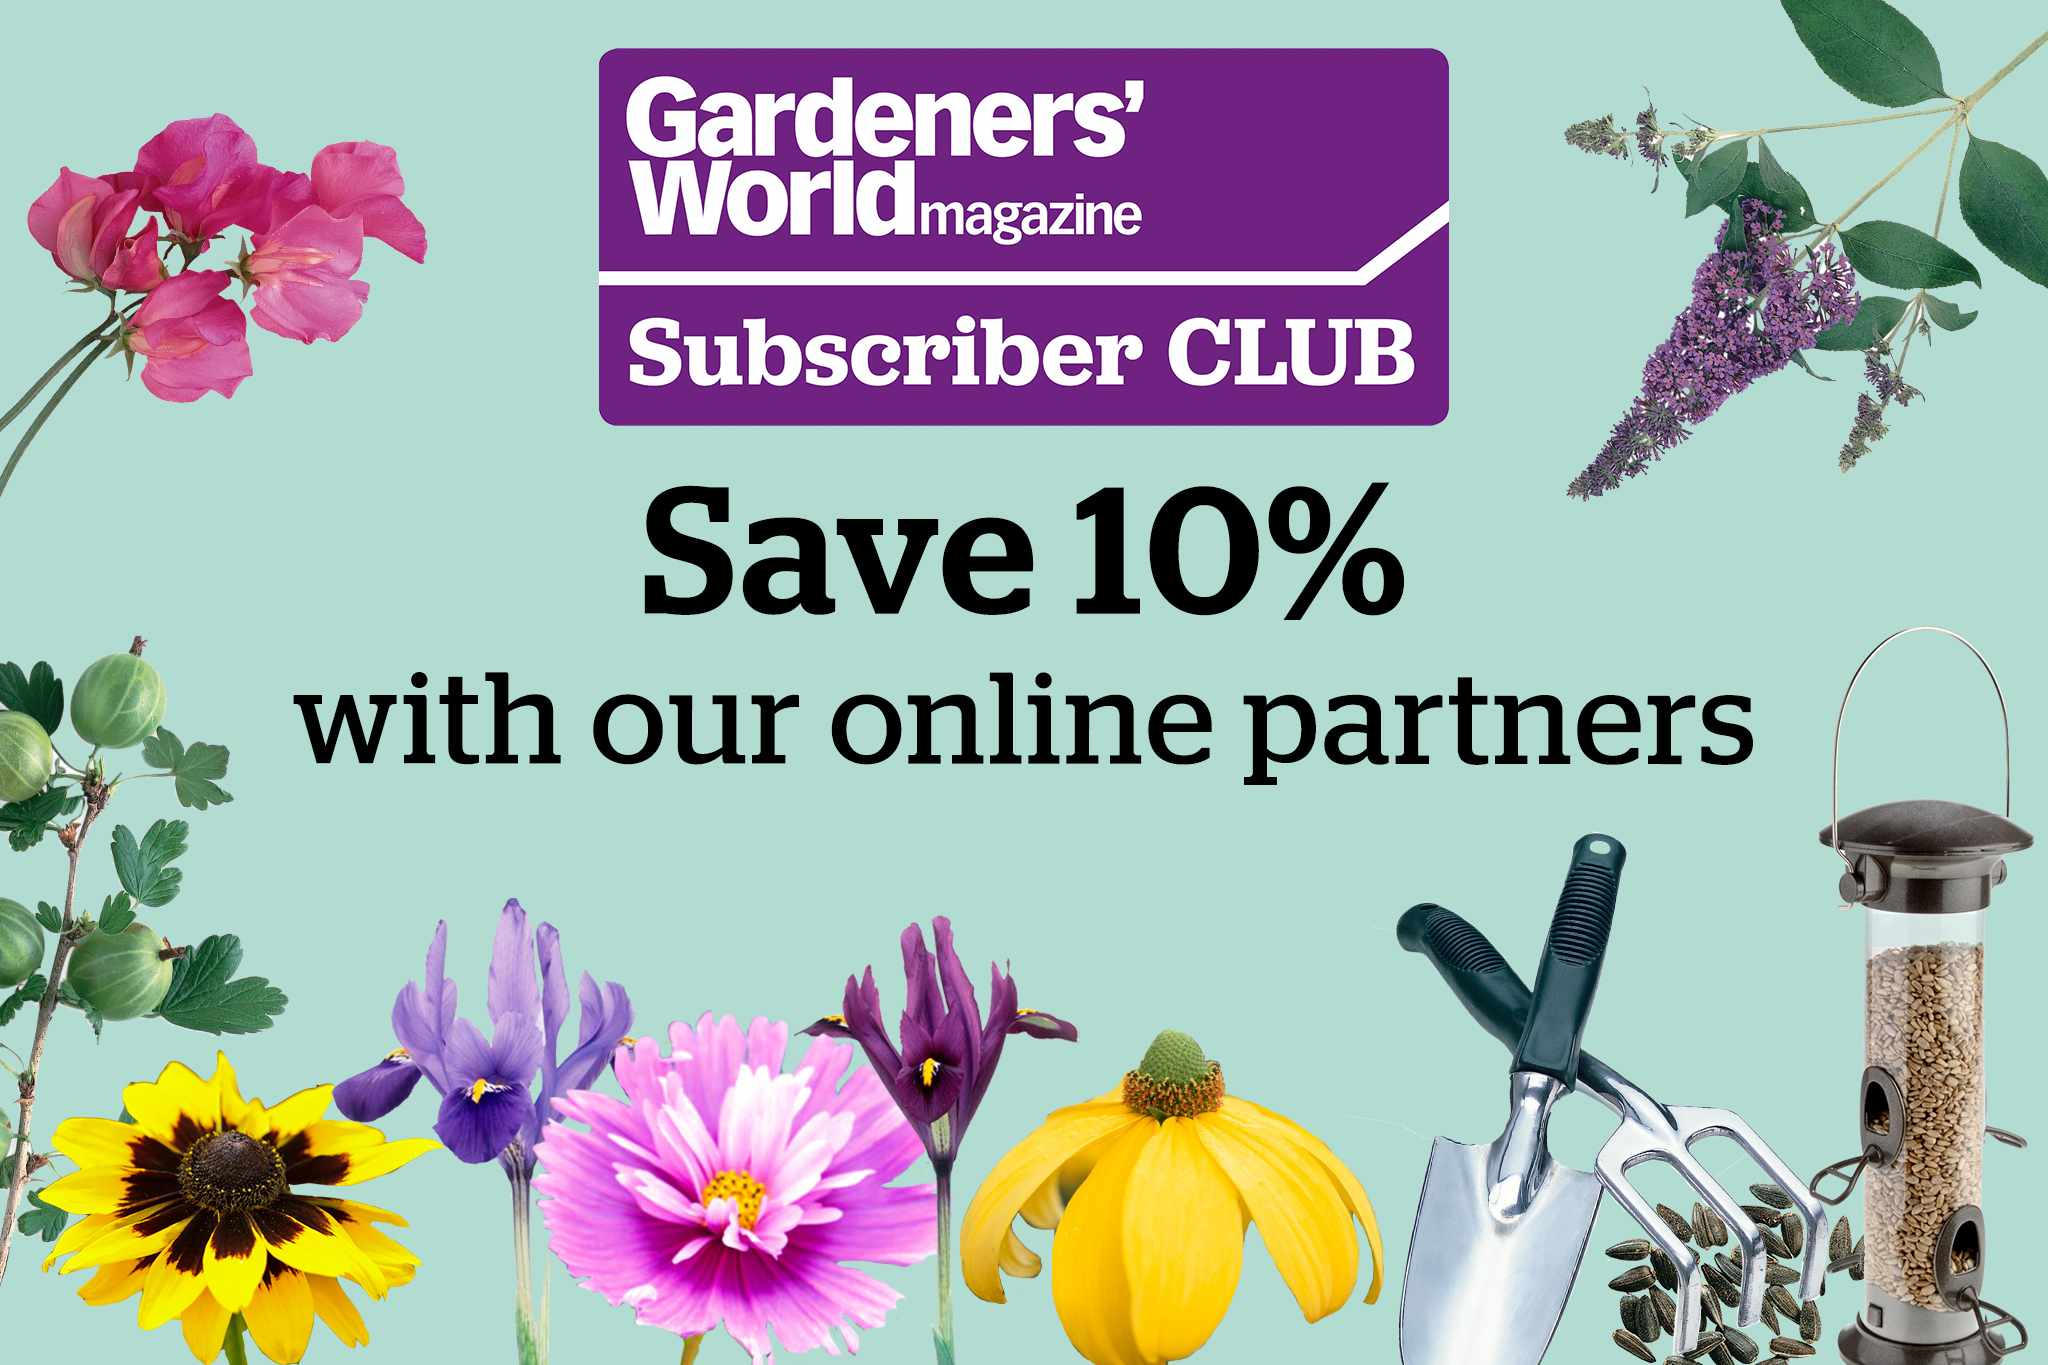 Subscriber Club: Save 10% all year round with our online partners